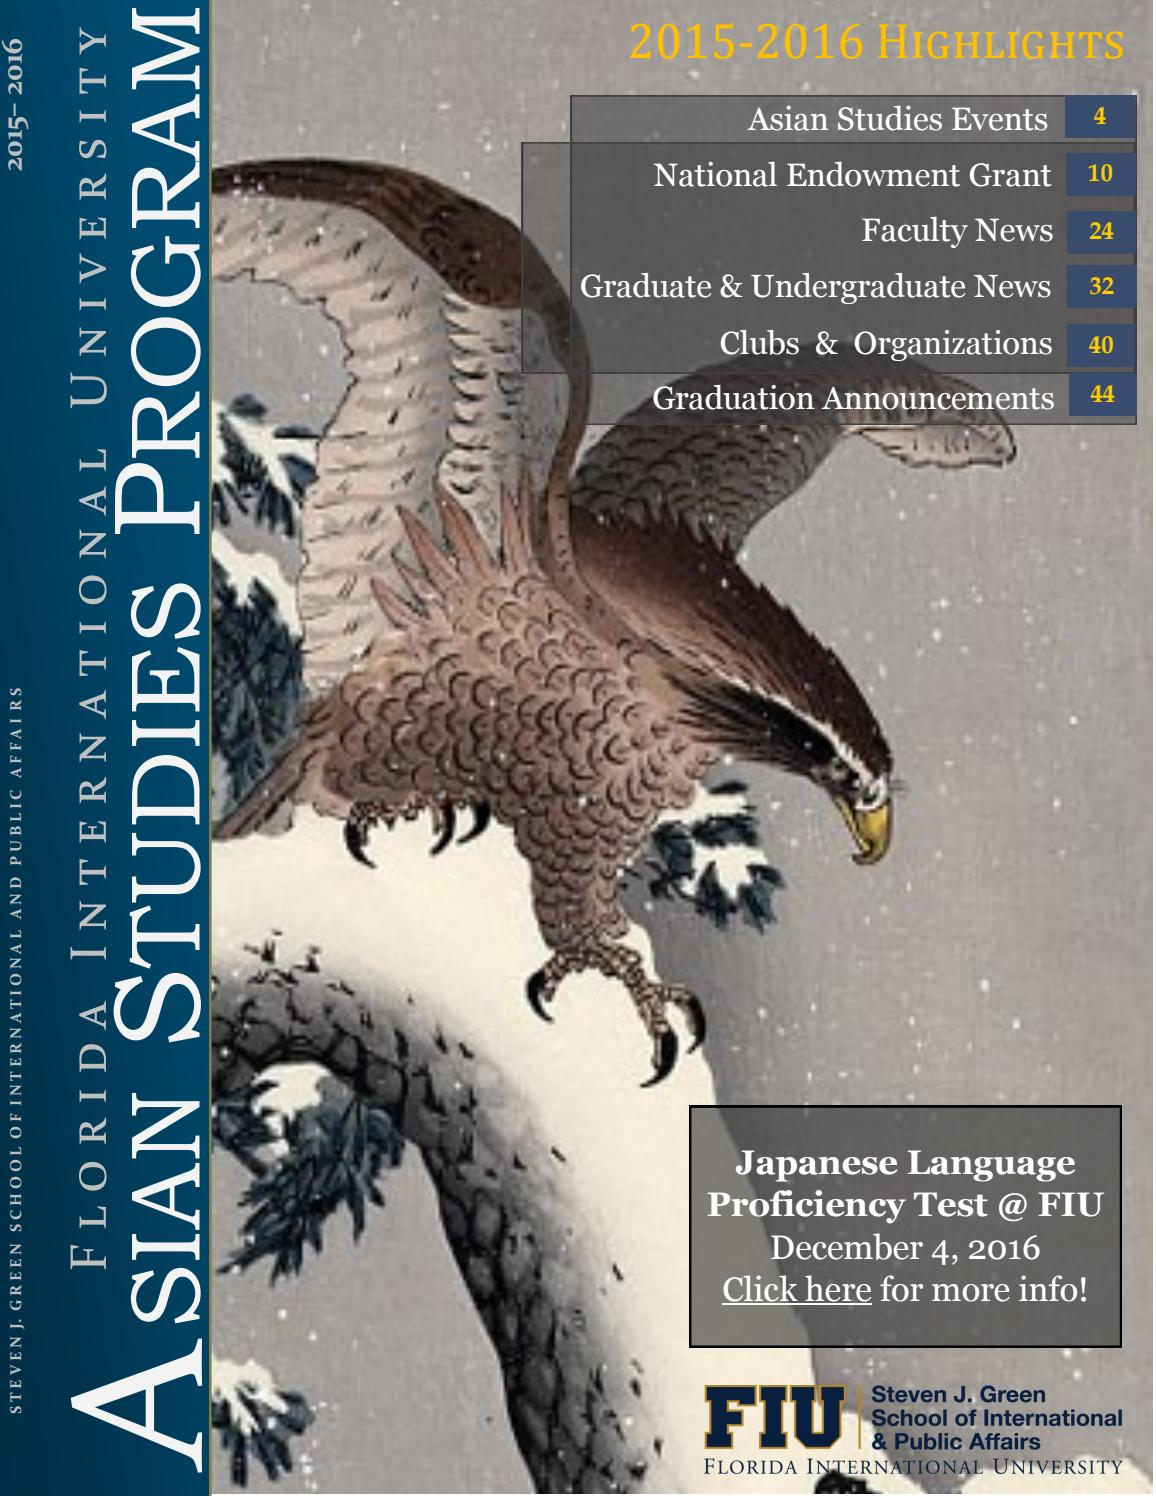 fiu s asian studies program newsletter by asian studies fiu s asian studies program newsletter 2015 2016 by asian studies issuu